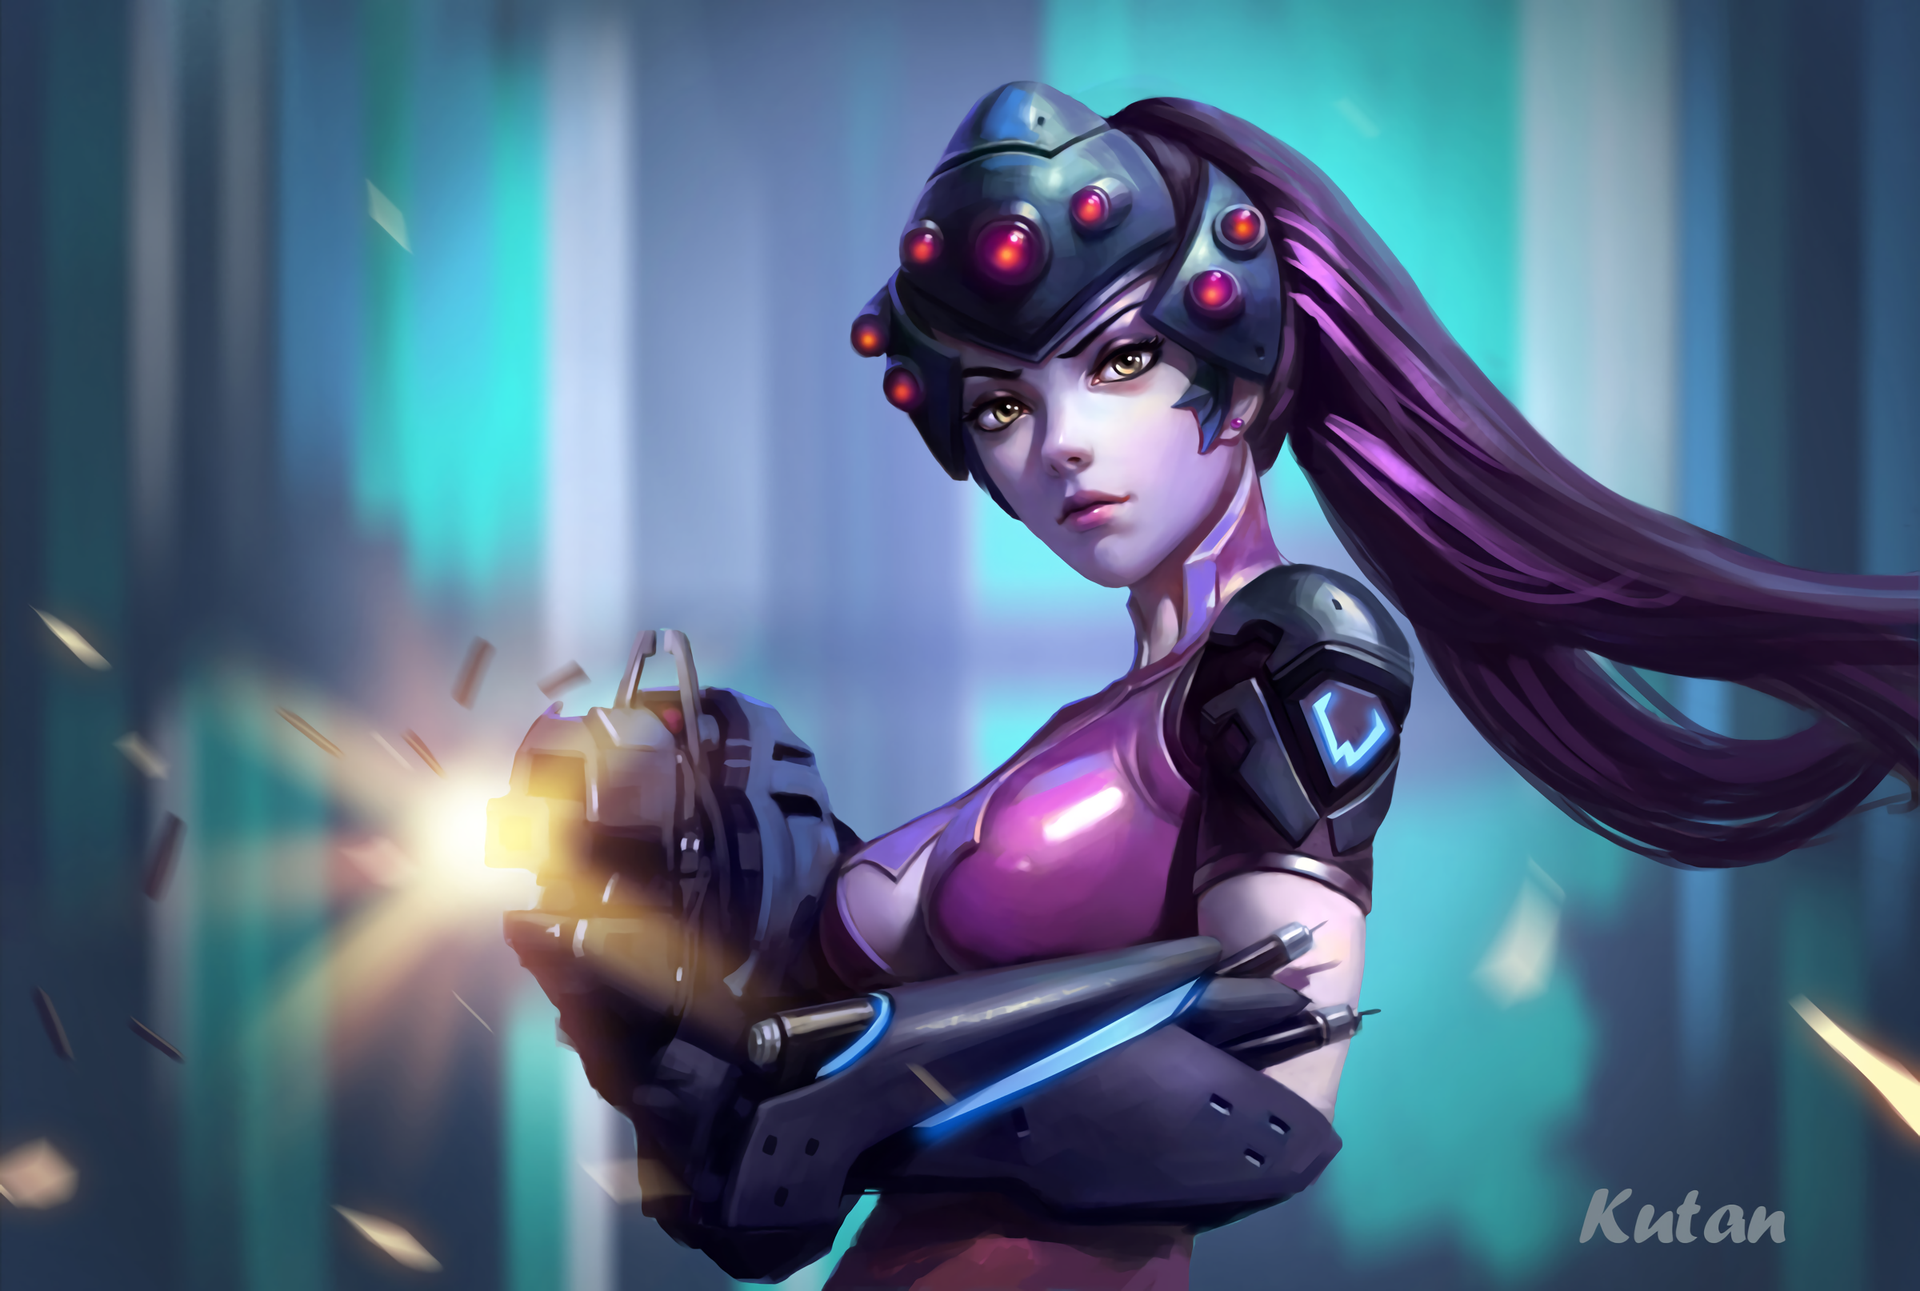 widowmaker overwatch wallpaper 1920x1080 - photo #36